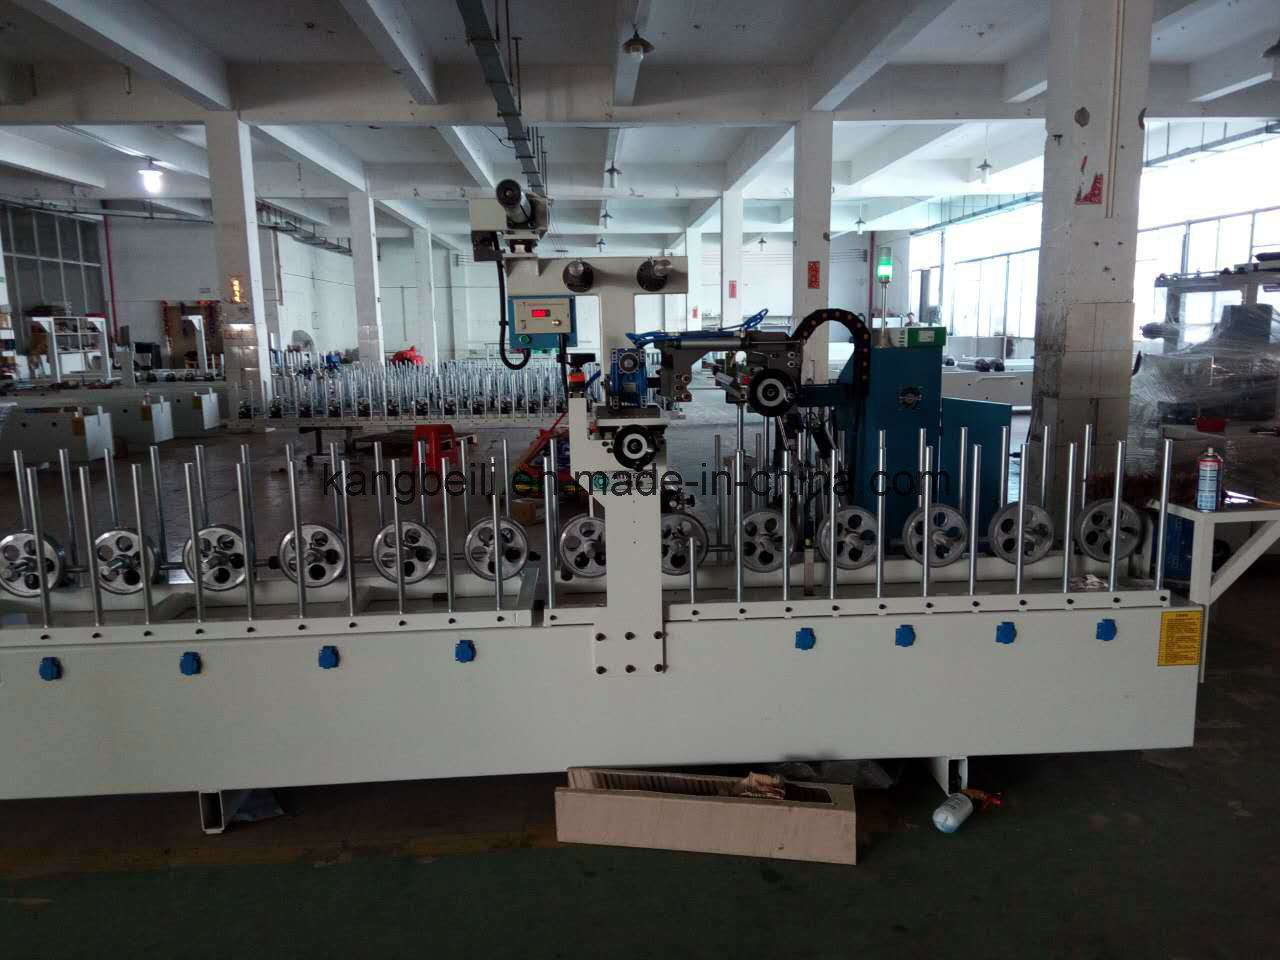 Pur Profile Hot adhesive Furniture Indoor Decorative Woodworking Wrapping Machine